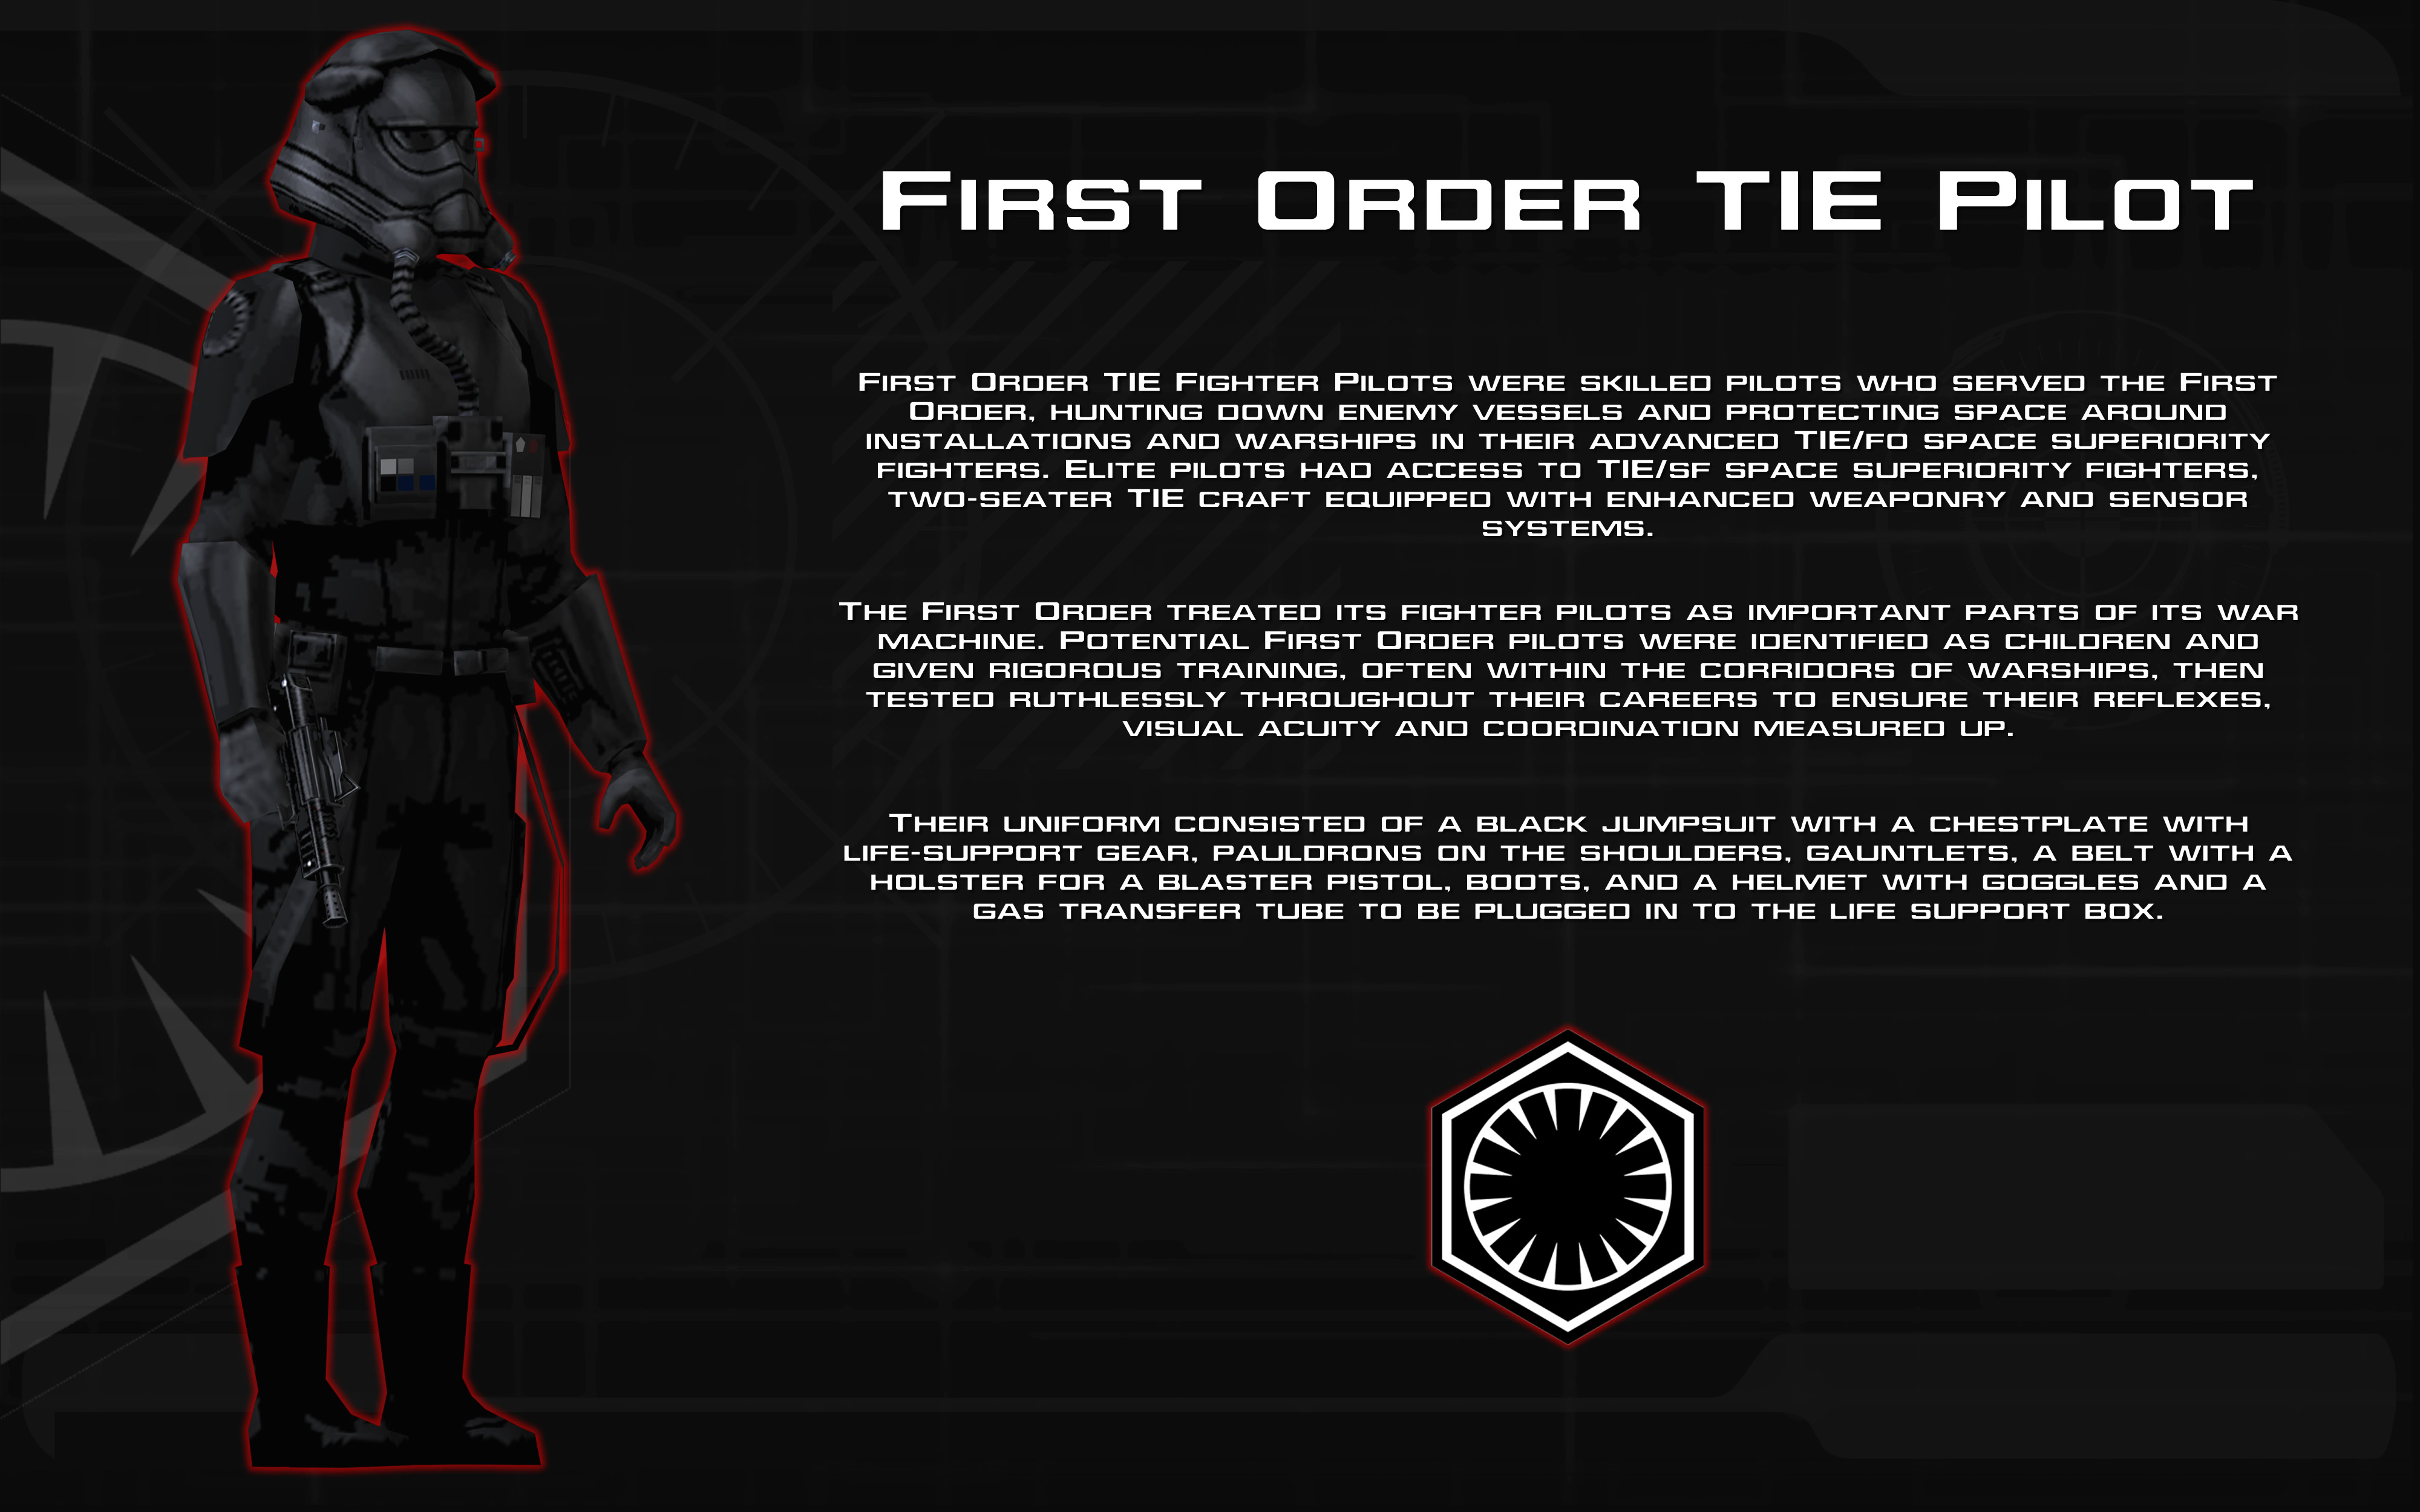 Star Wars First Order Tie Fighter Wallpaper